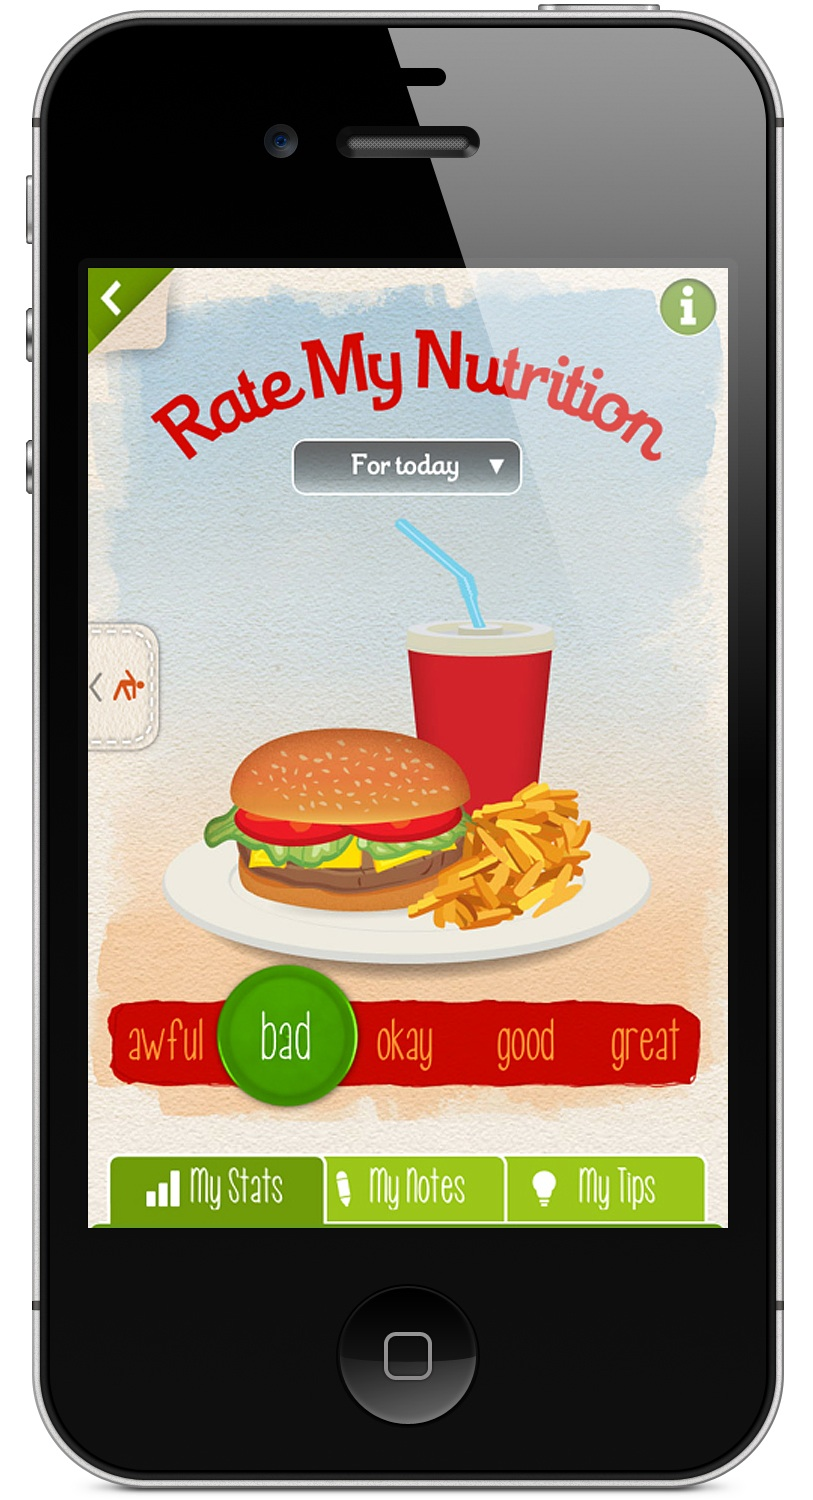 nutrition iphone app, sleep iPhone app, exercise iphone app